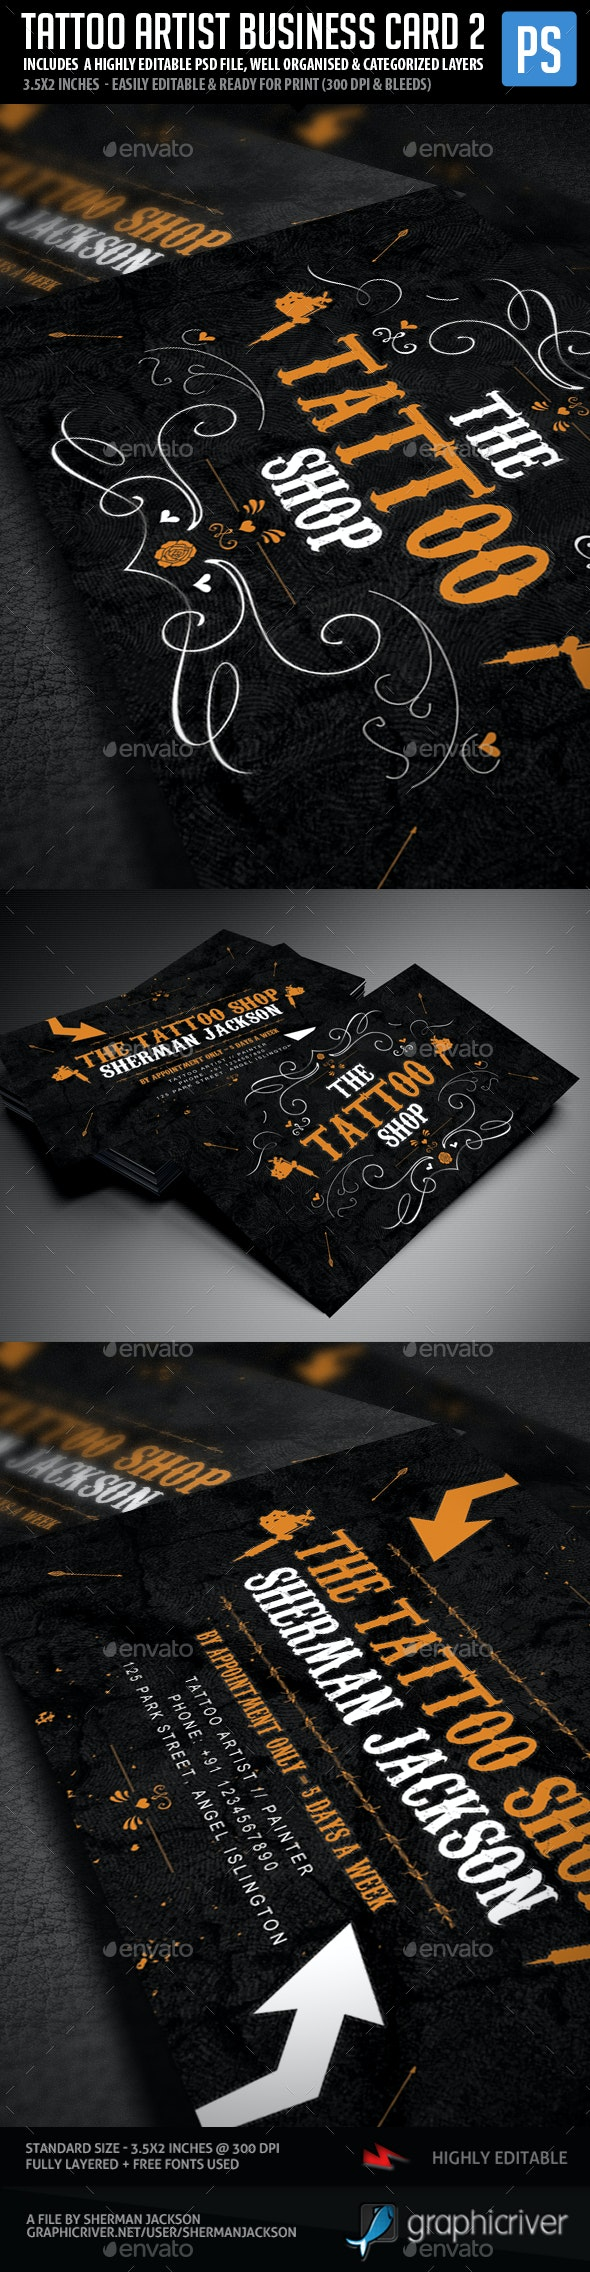 Tattoo Artist Business Cards V.2 - Industry Specific Business Cards